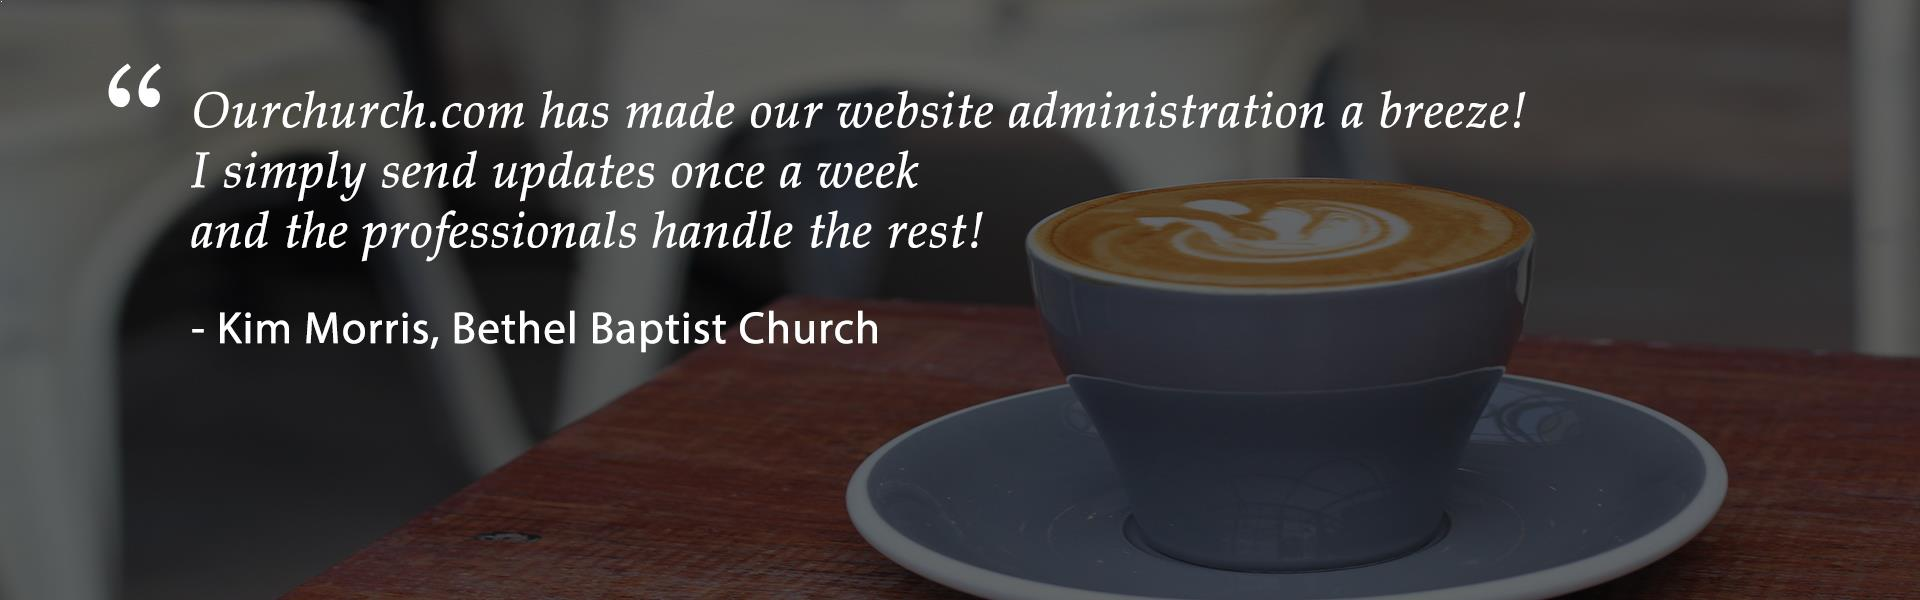 bethel church web design testimonial